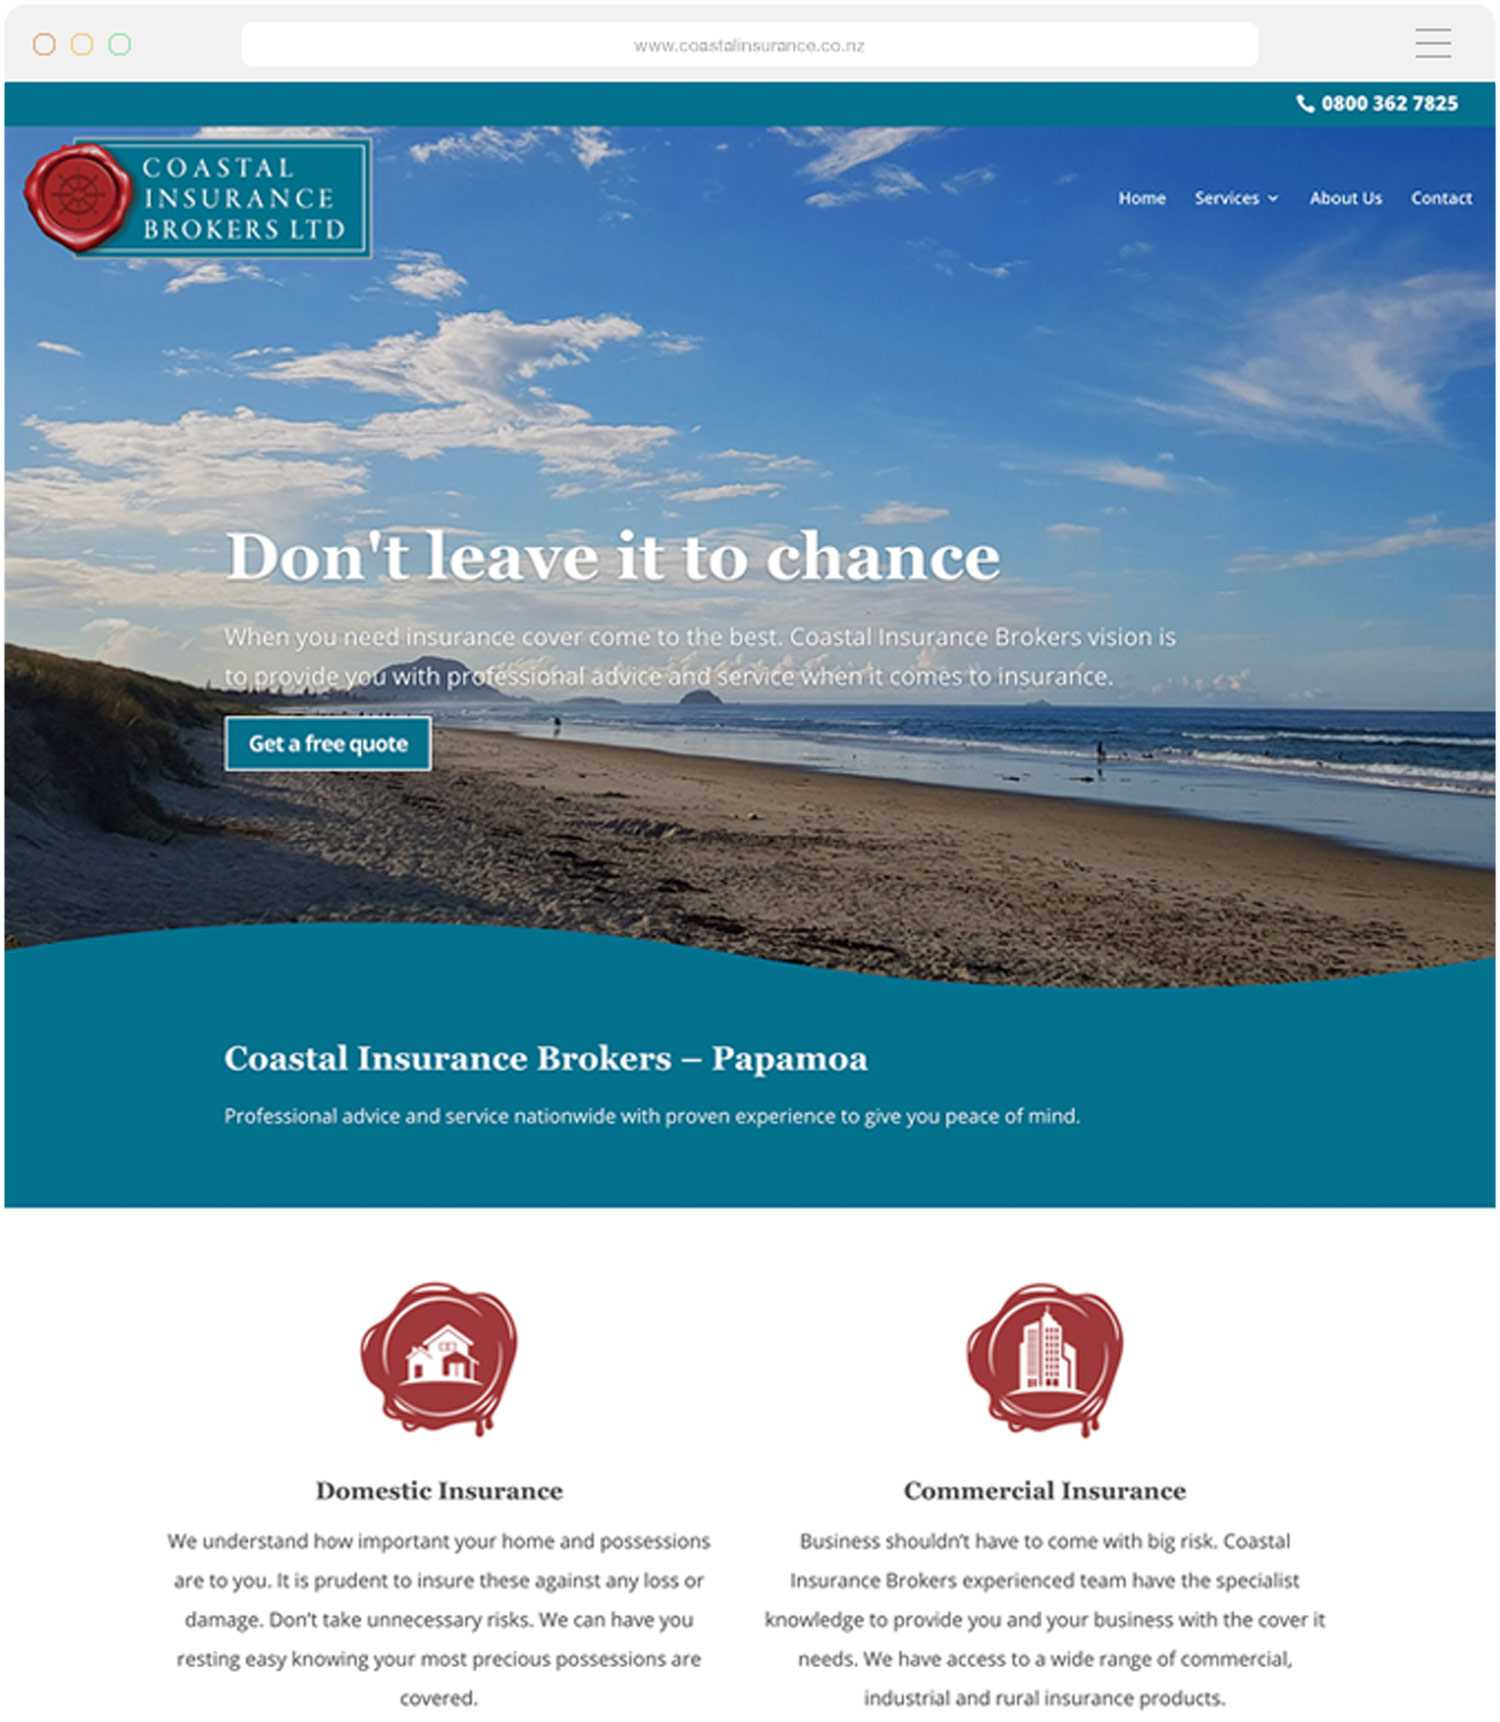 Website build for Coastal Insurance Brokers